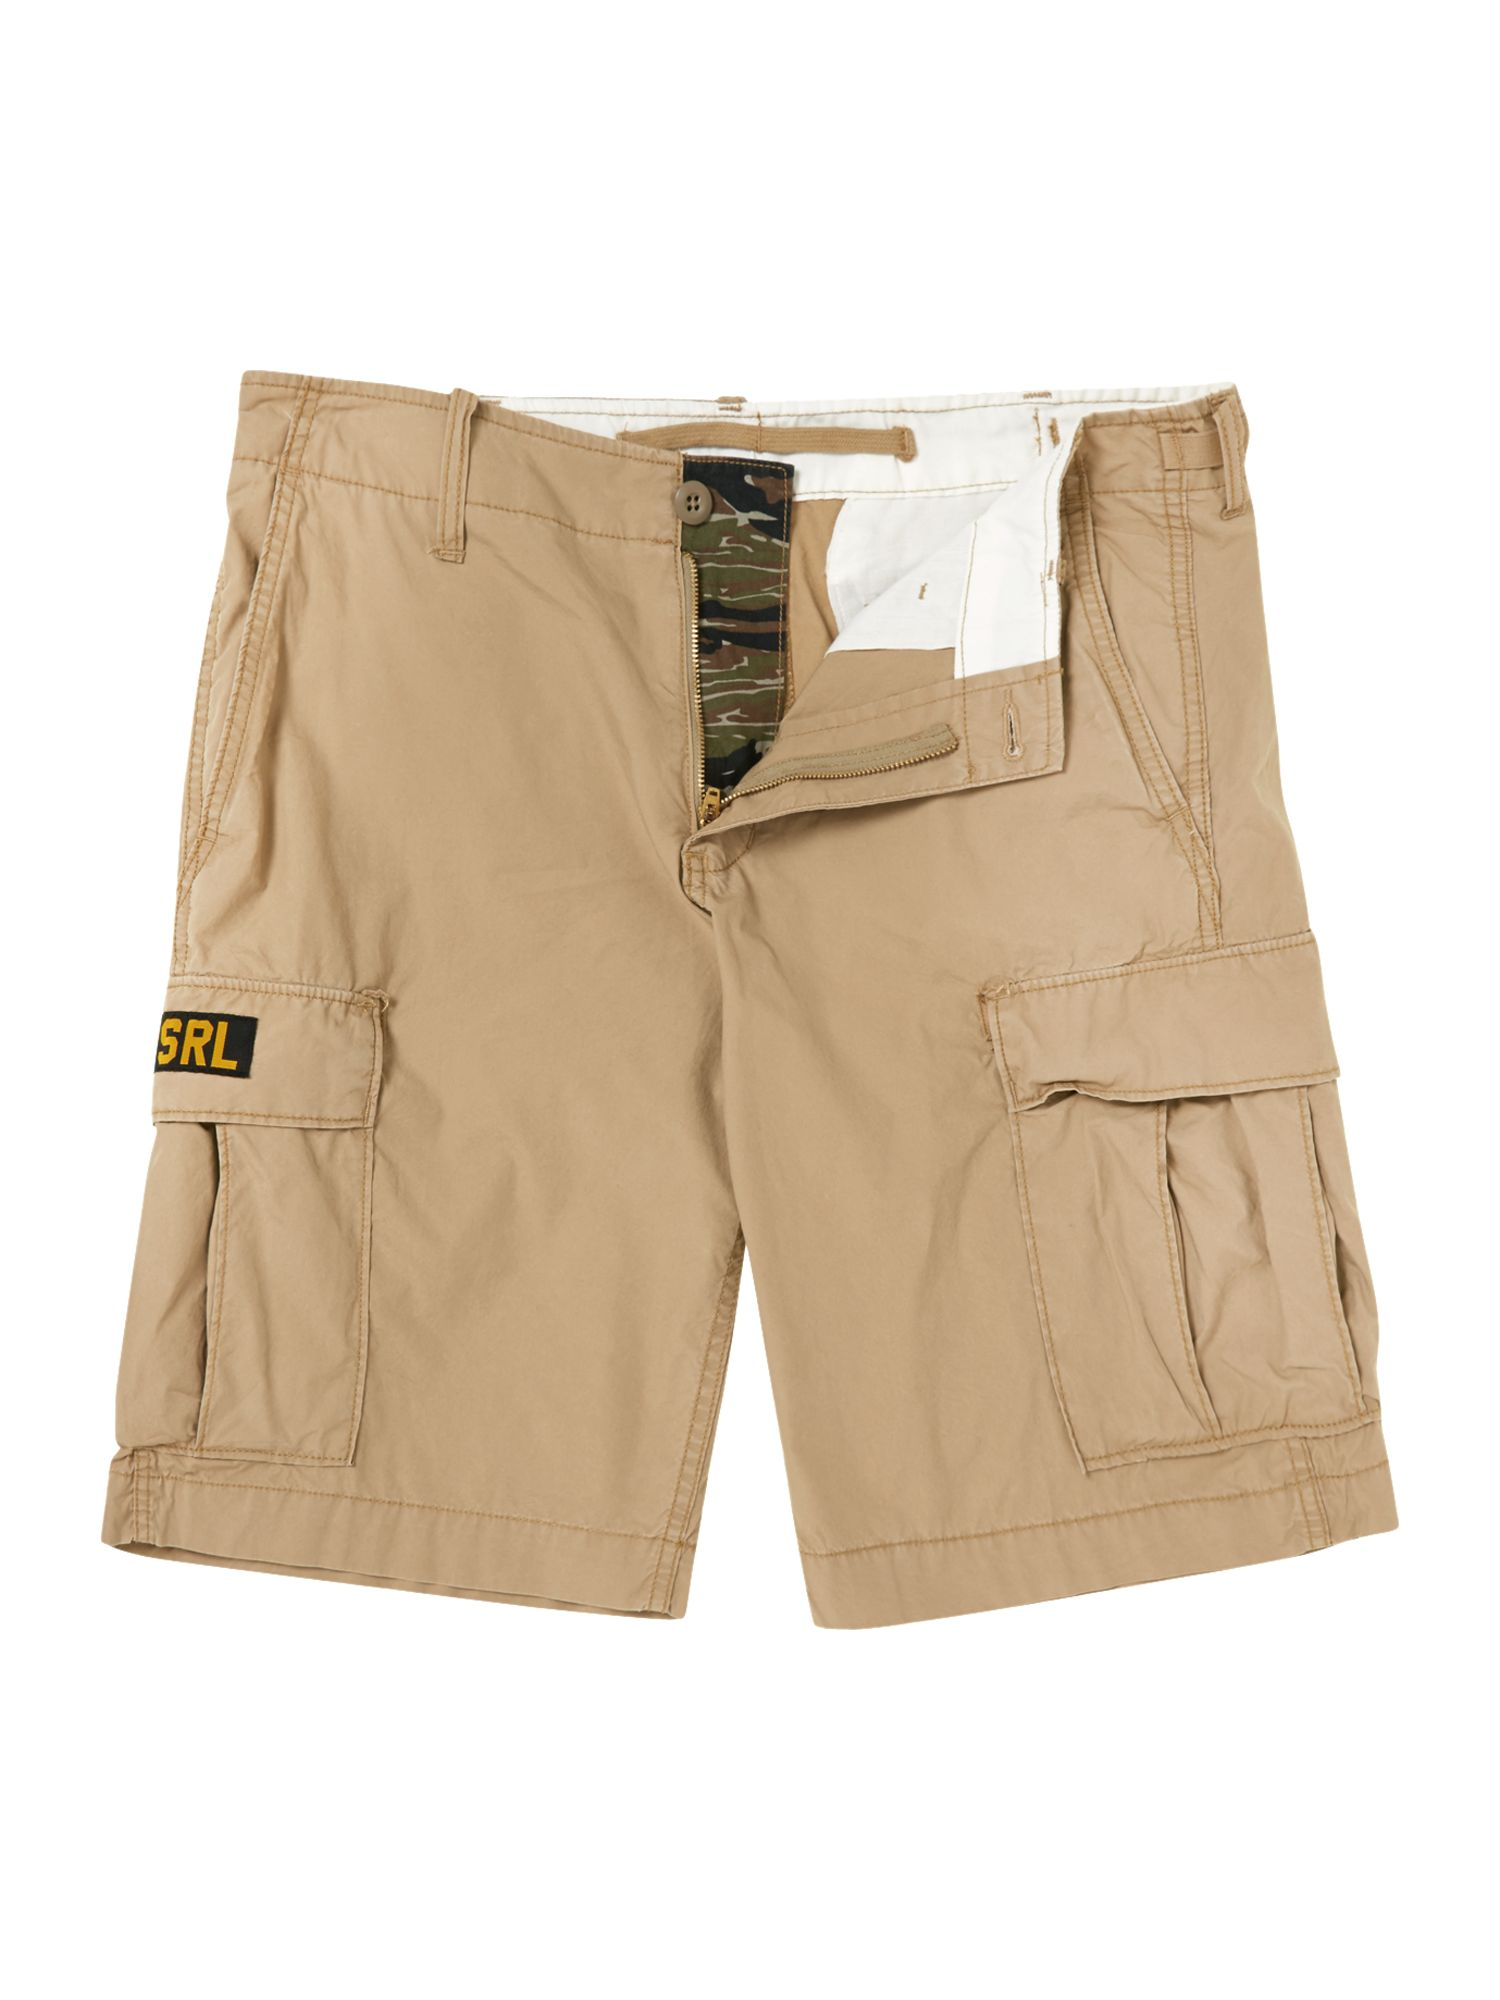 Crusade cargo short